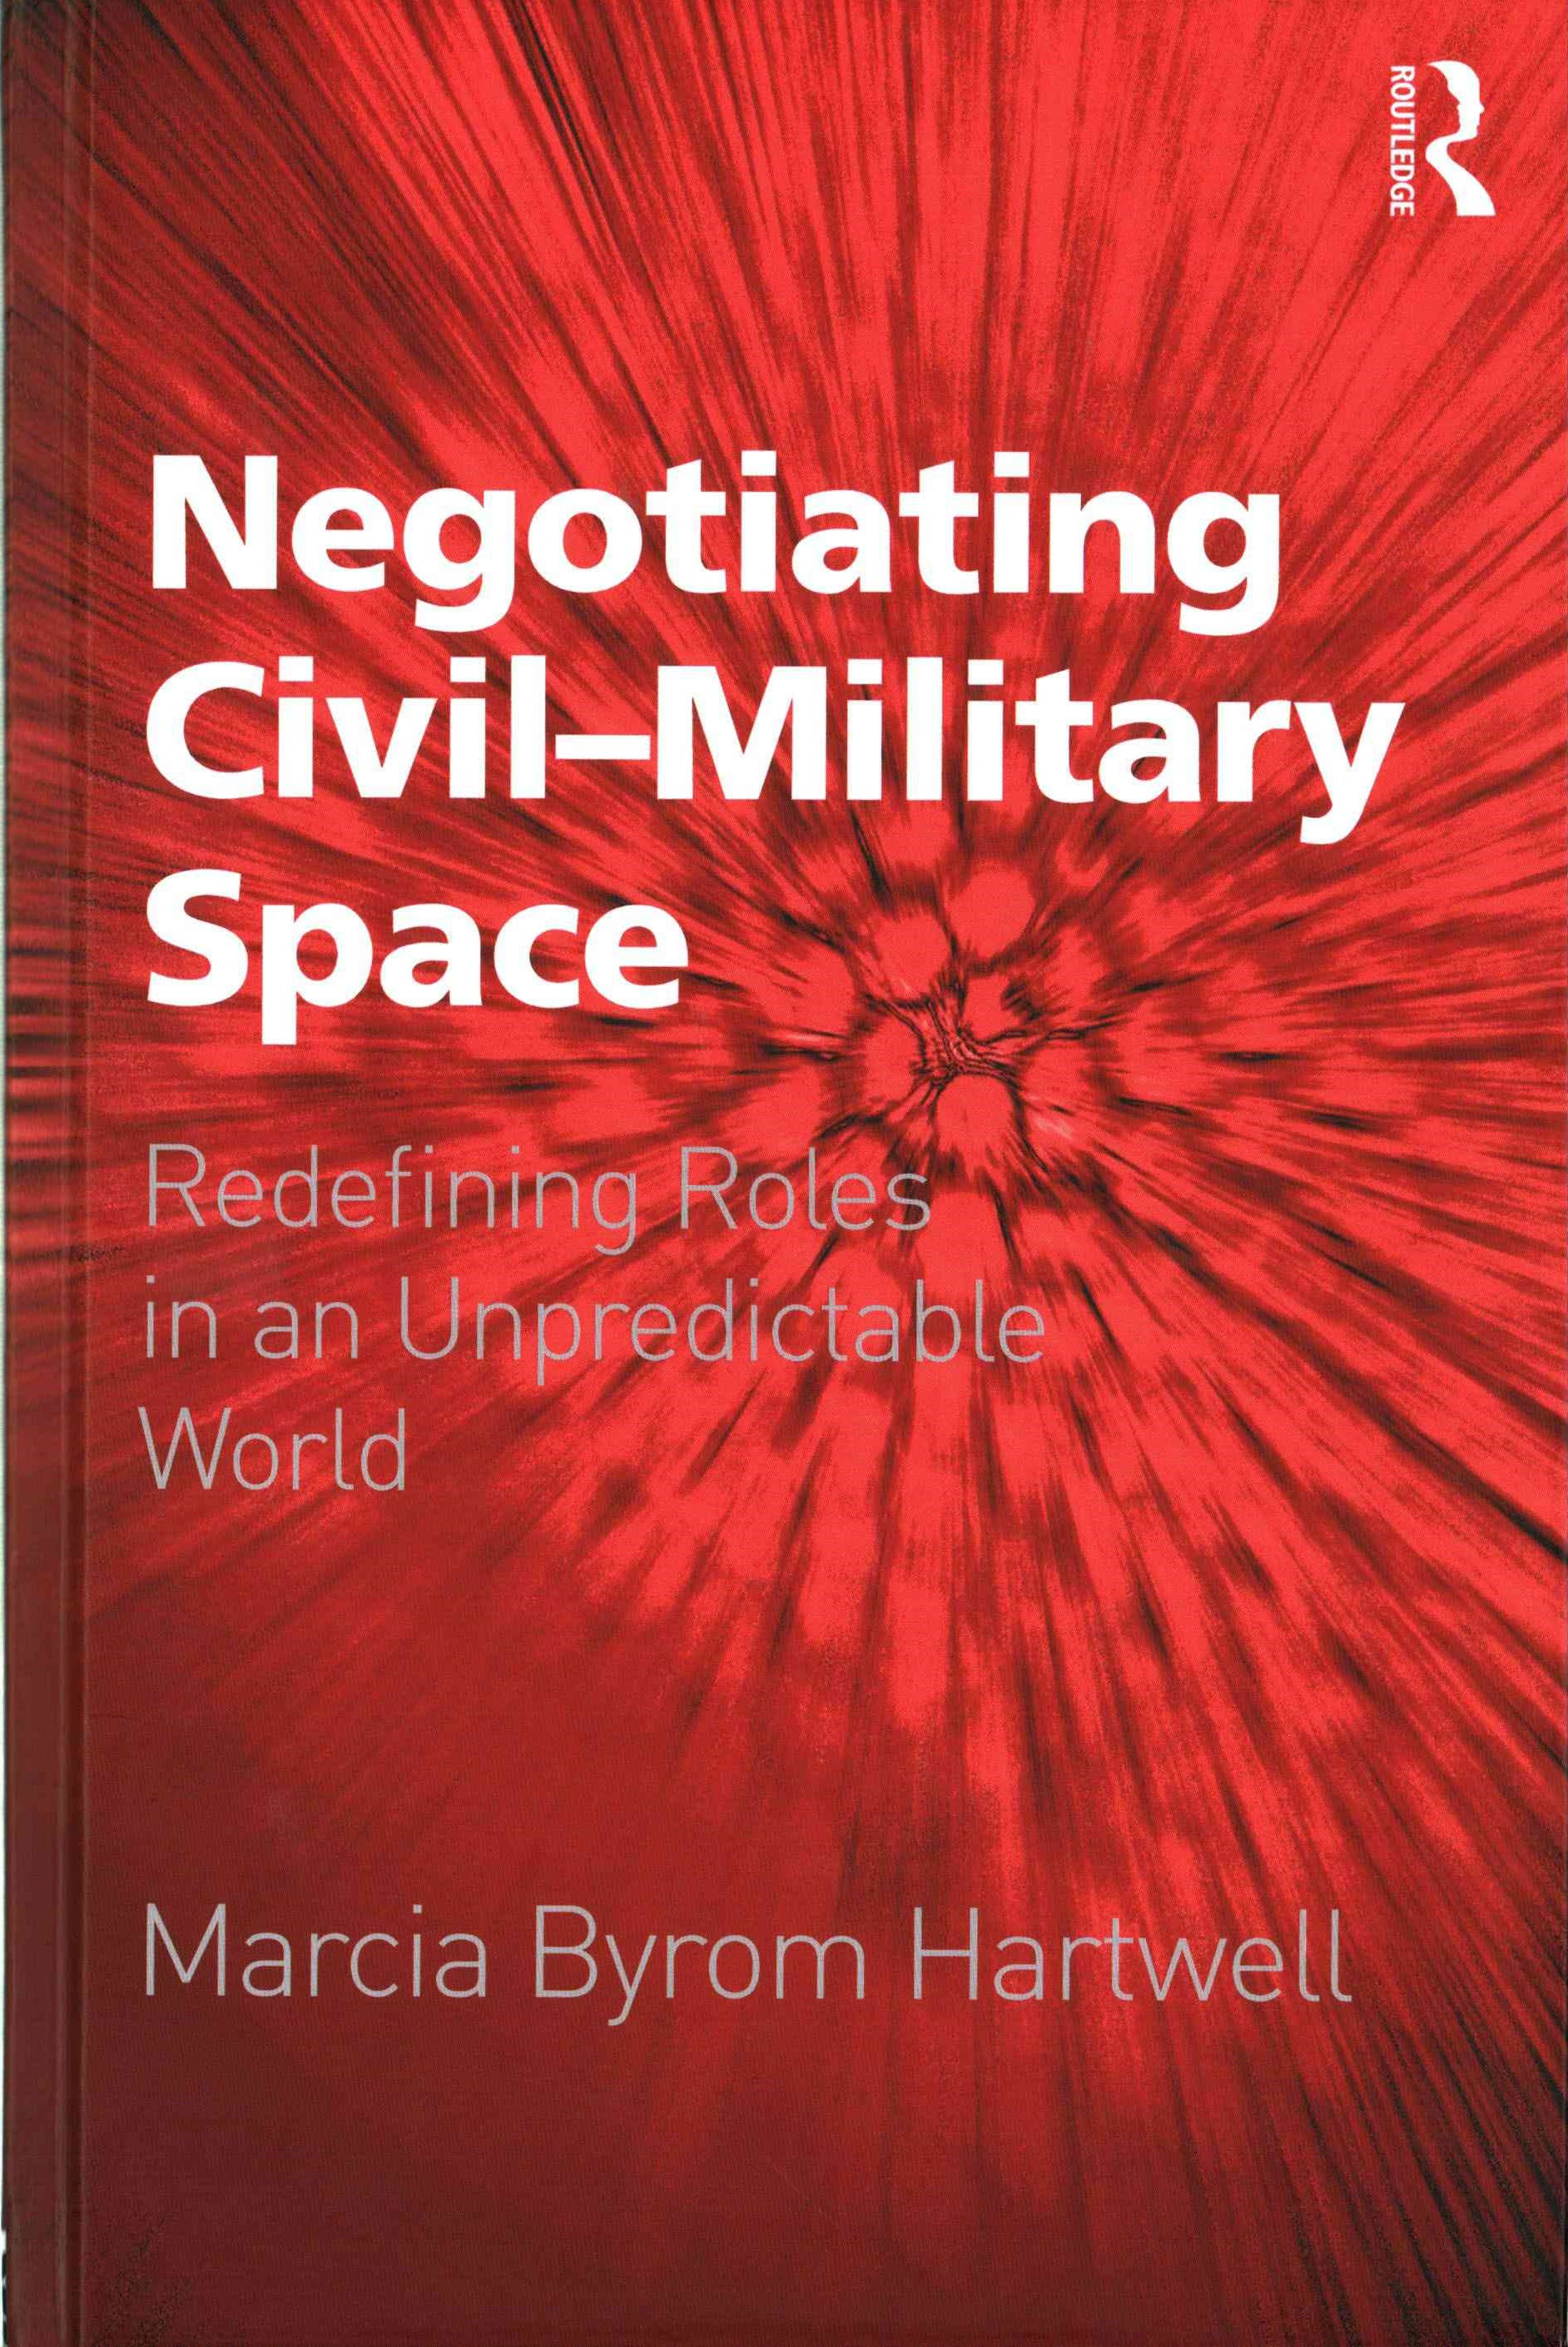 Negotiating Civil-Military Space